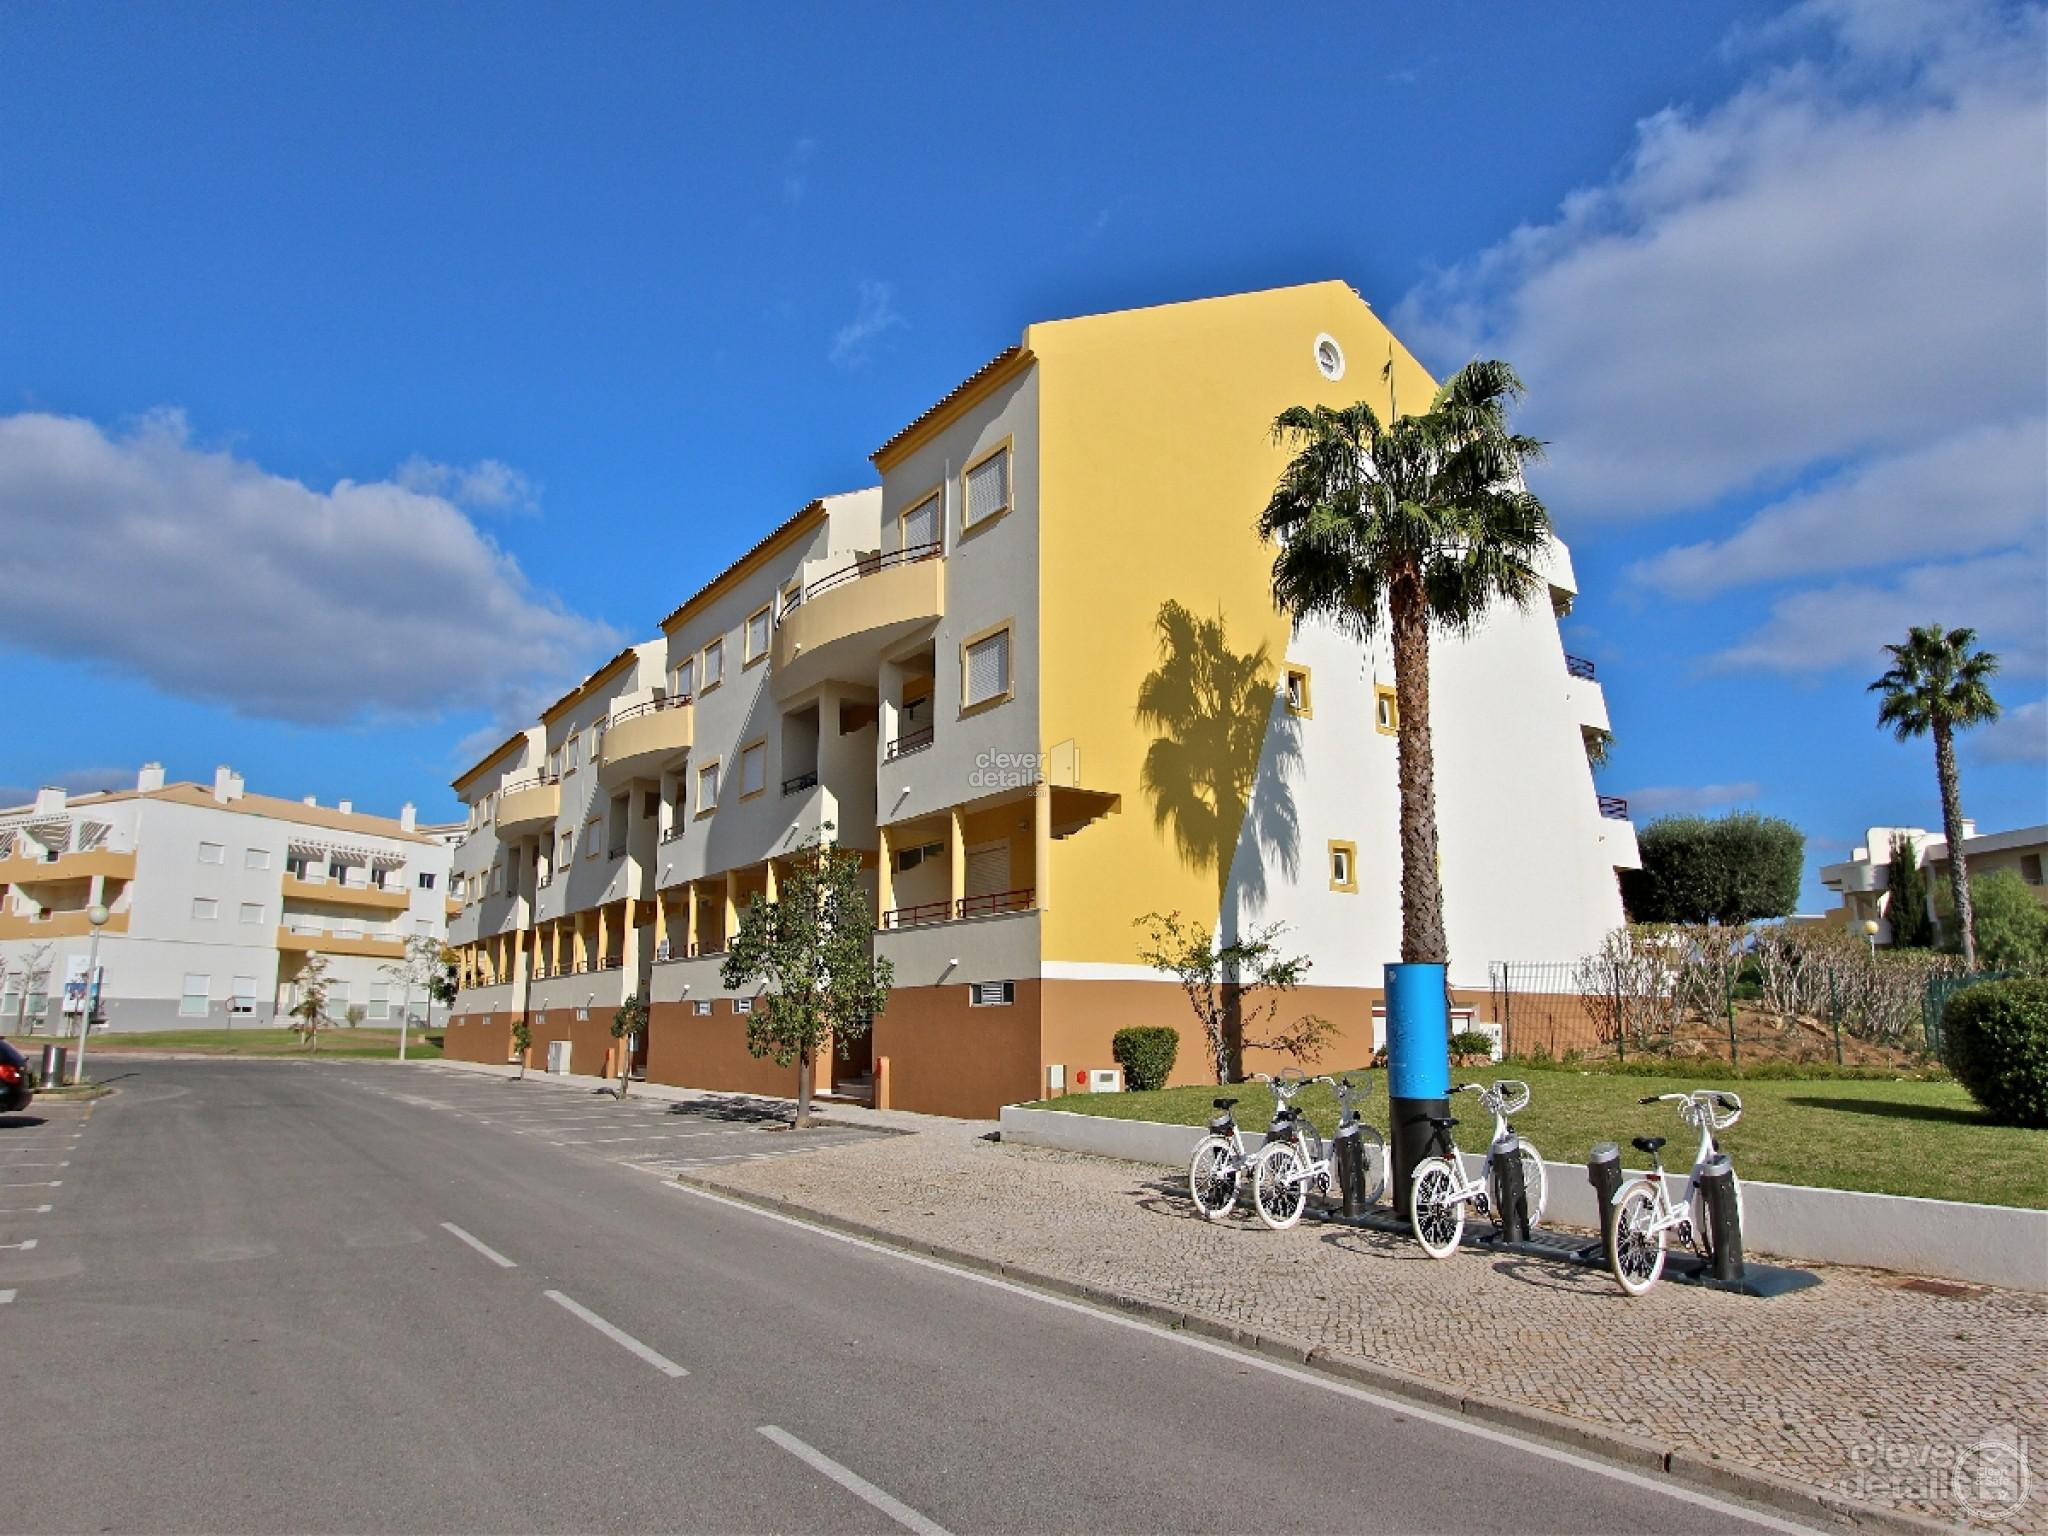 Vilamoura Holiday Apartments: This 3 bedroomed duplex penthouse apartment is located in a residencial area that is only 1,5 kms from the beach and the Marina of Vilamoura.